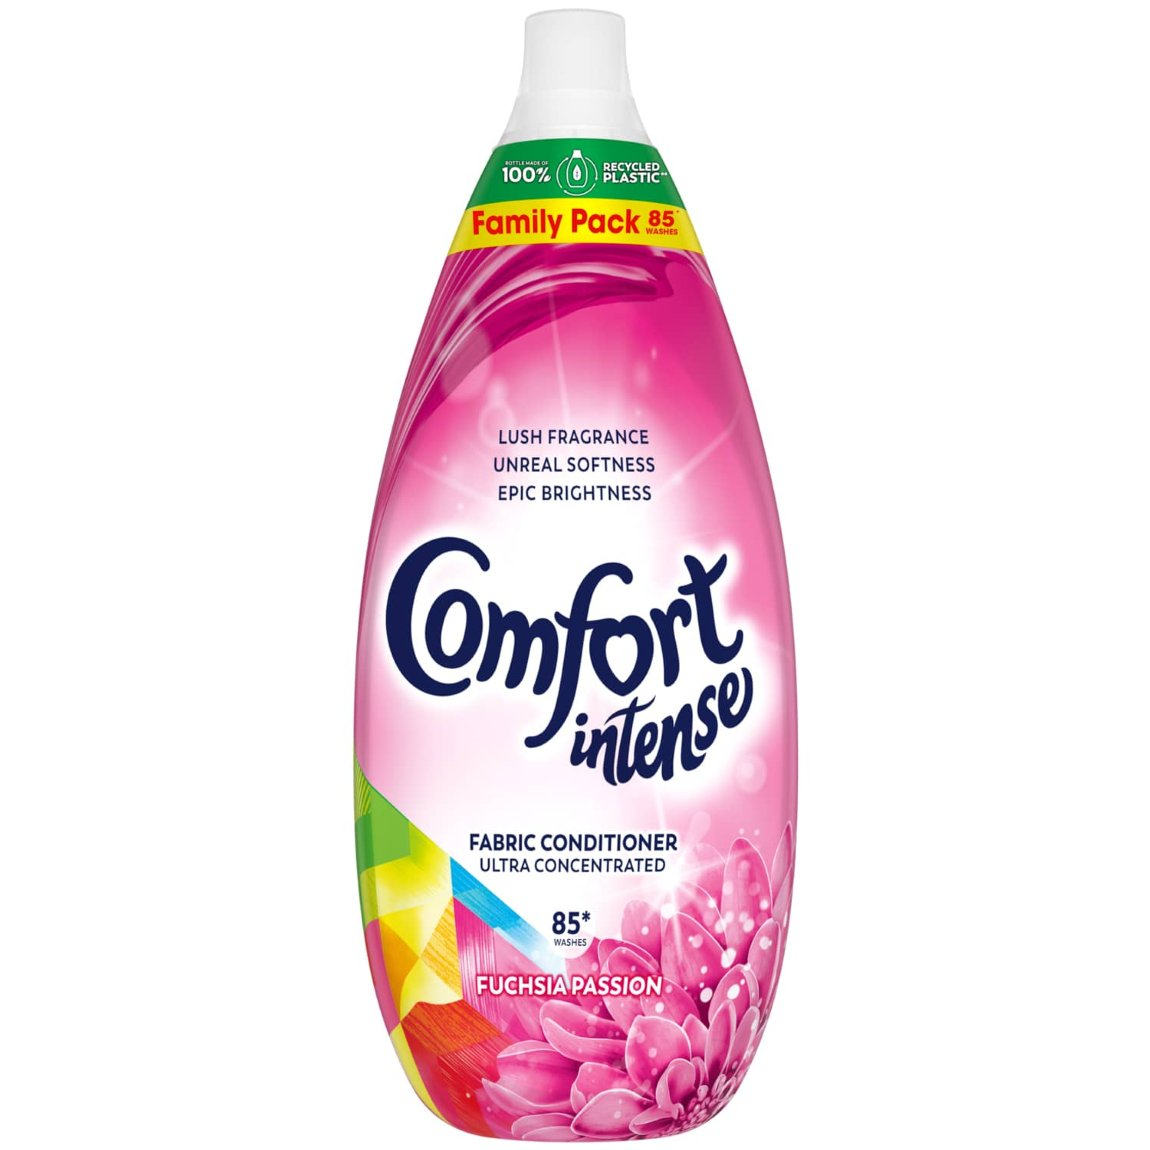 Comfort Intense Fabric Conditioner 85W - Fuchsia Passion